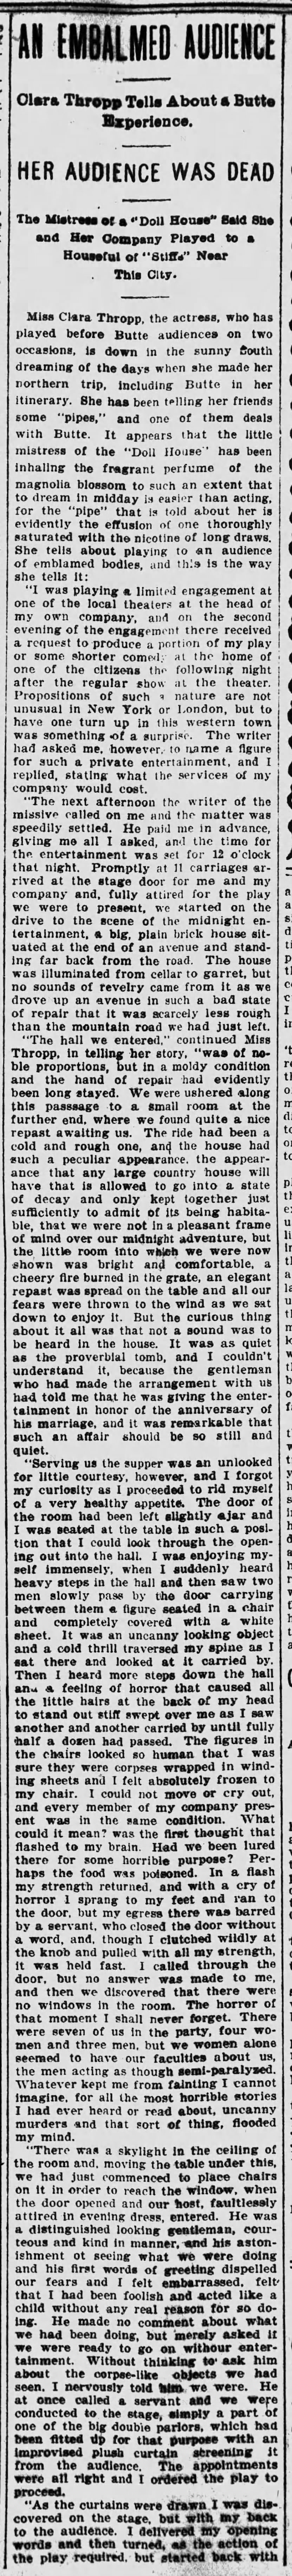 The_Anaconda_Standard_Mon__Feb_18__1901_